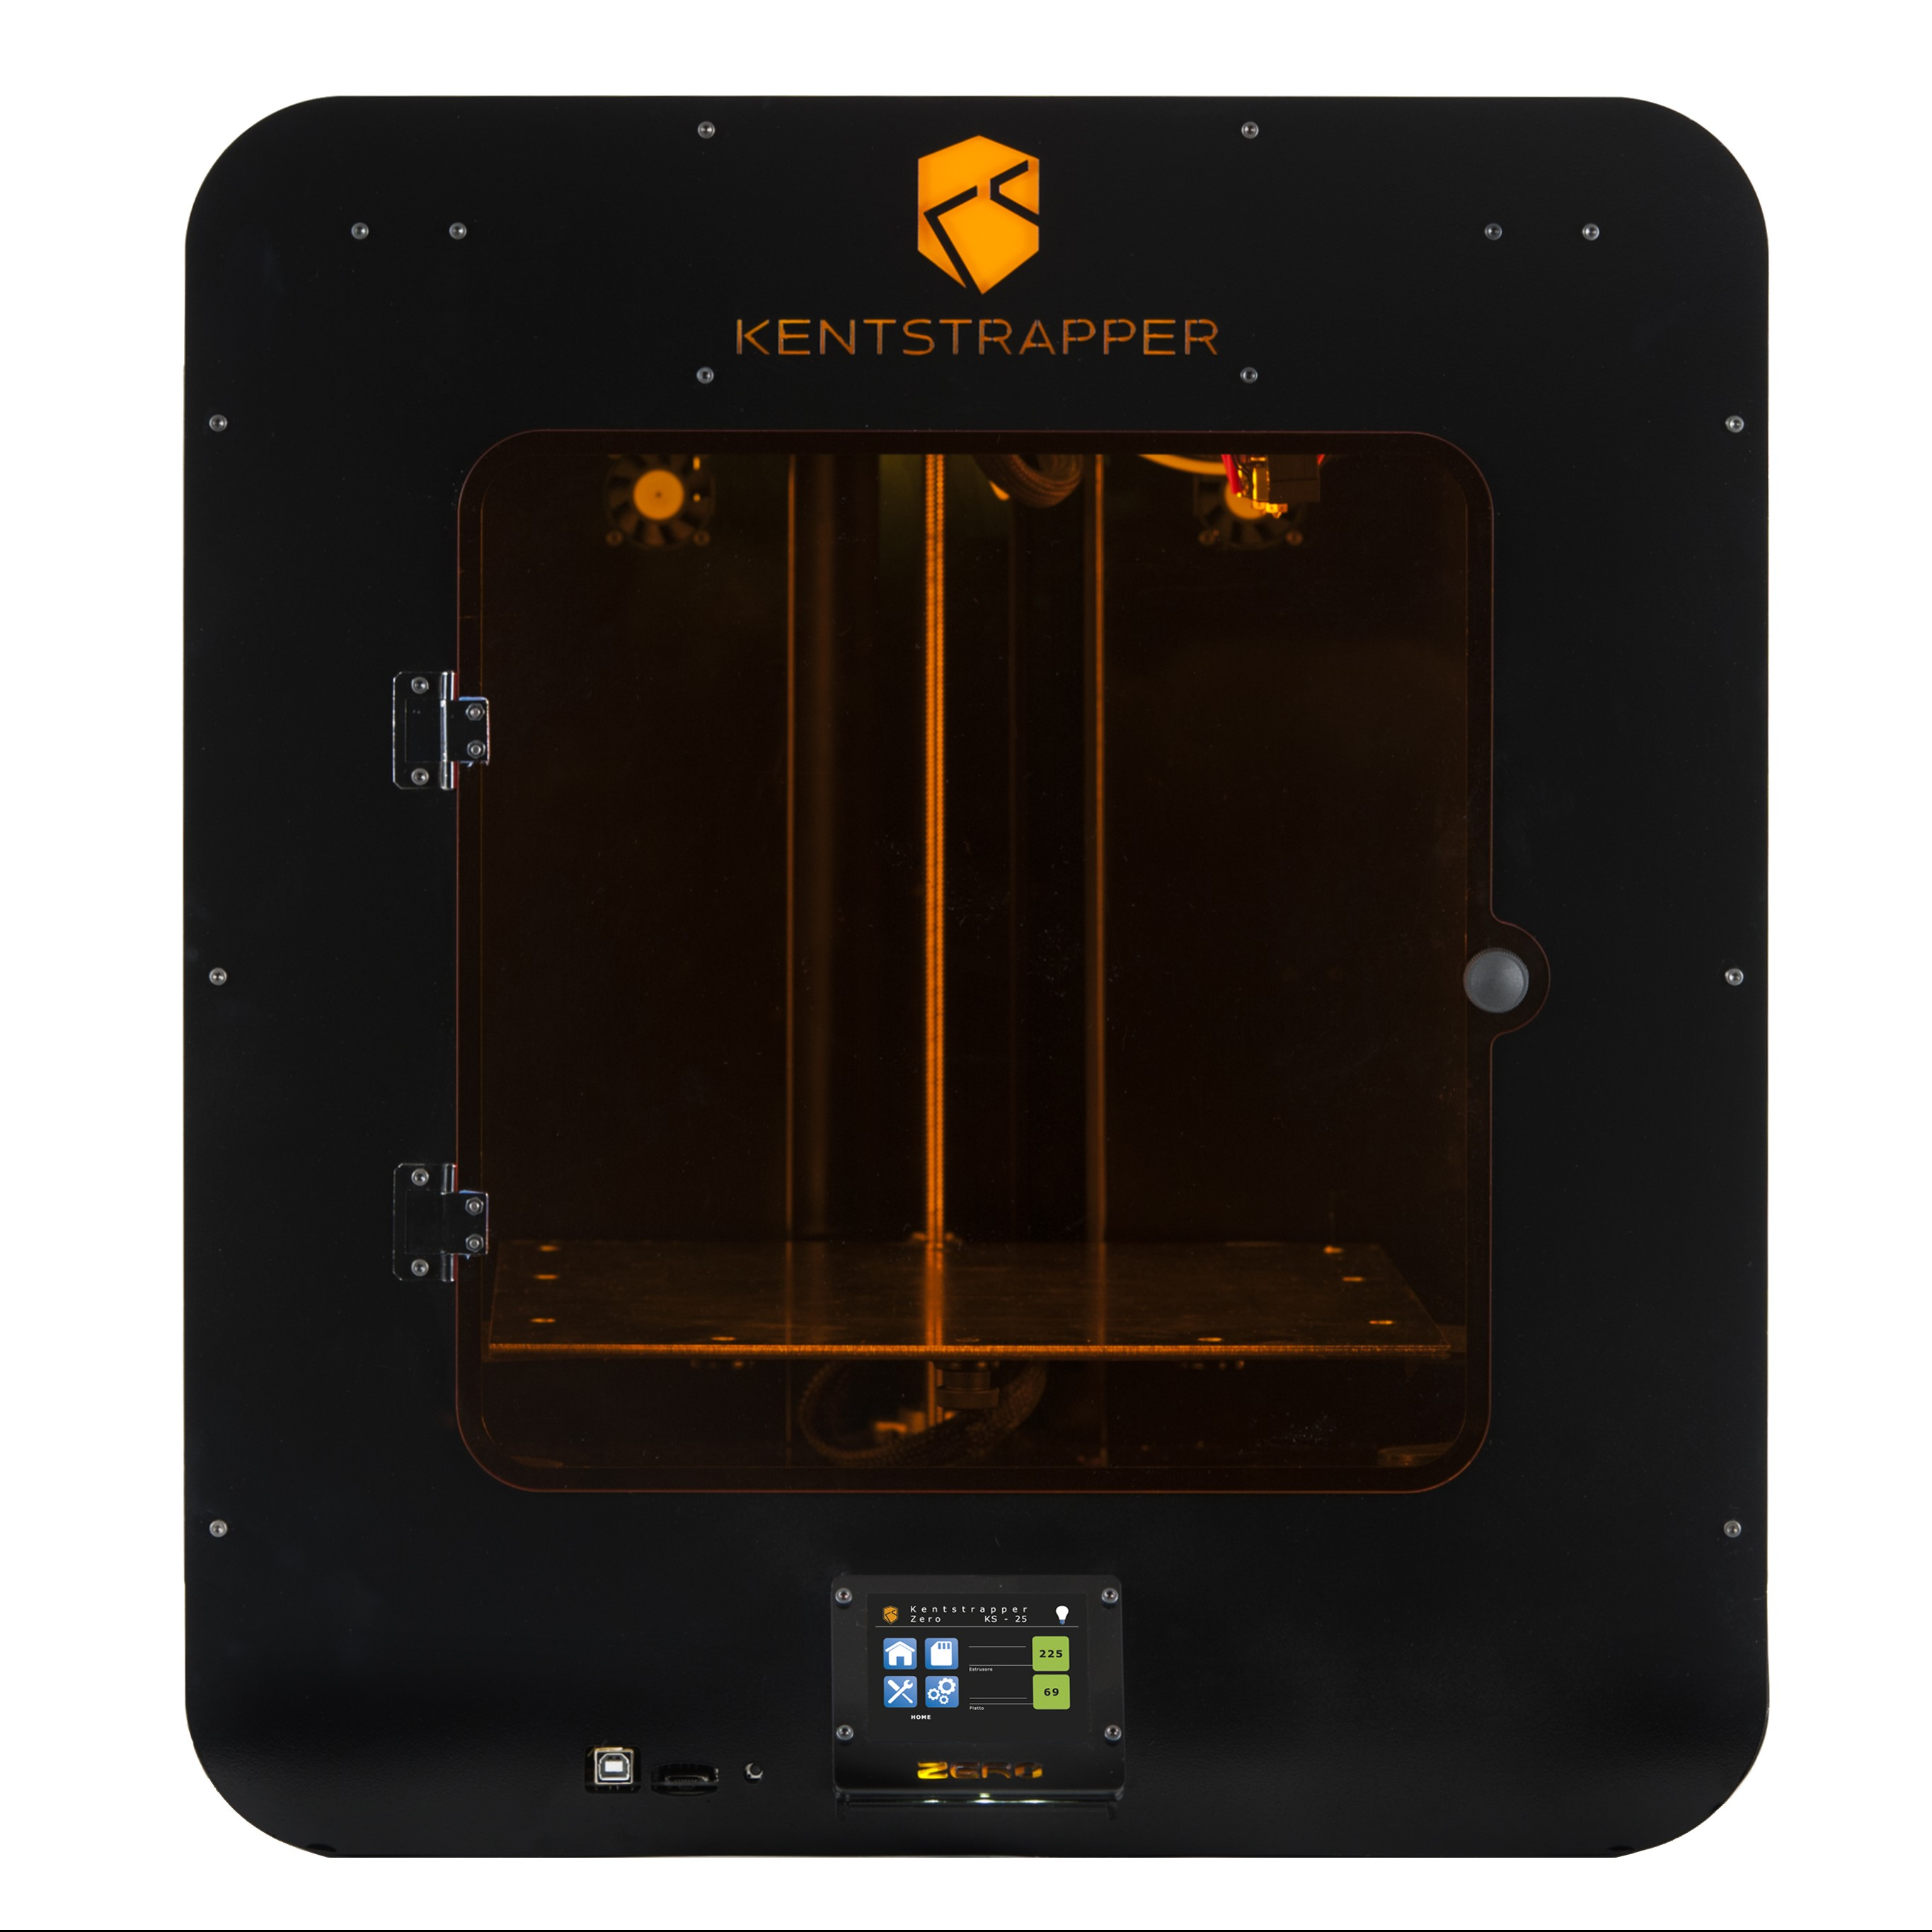 Kentstrapper's Zero 3D Printer: Plug-n-Play 3D Printing Promising Zero Stress